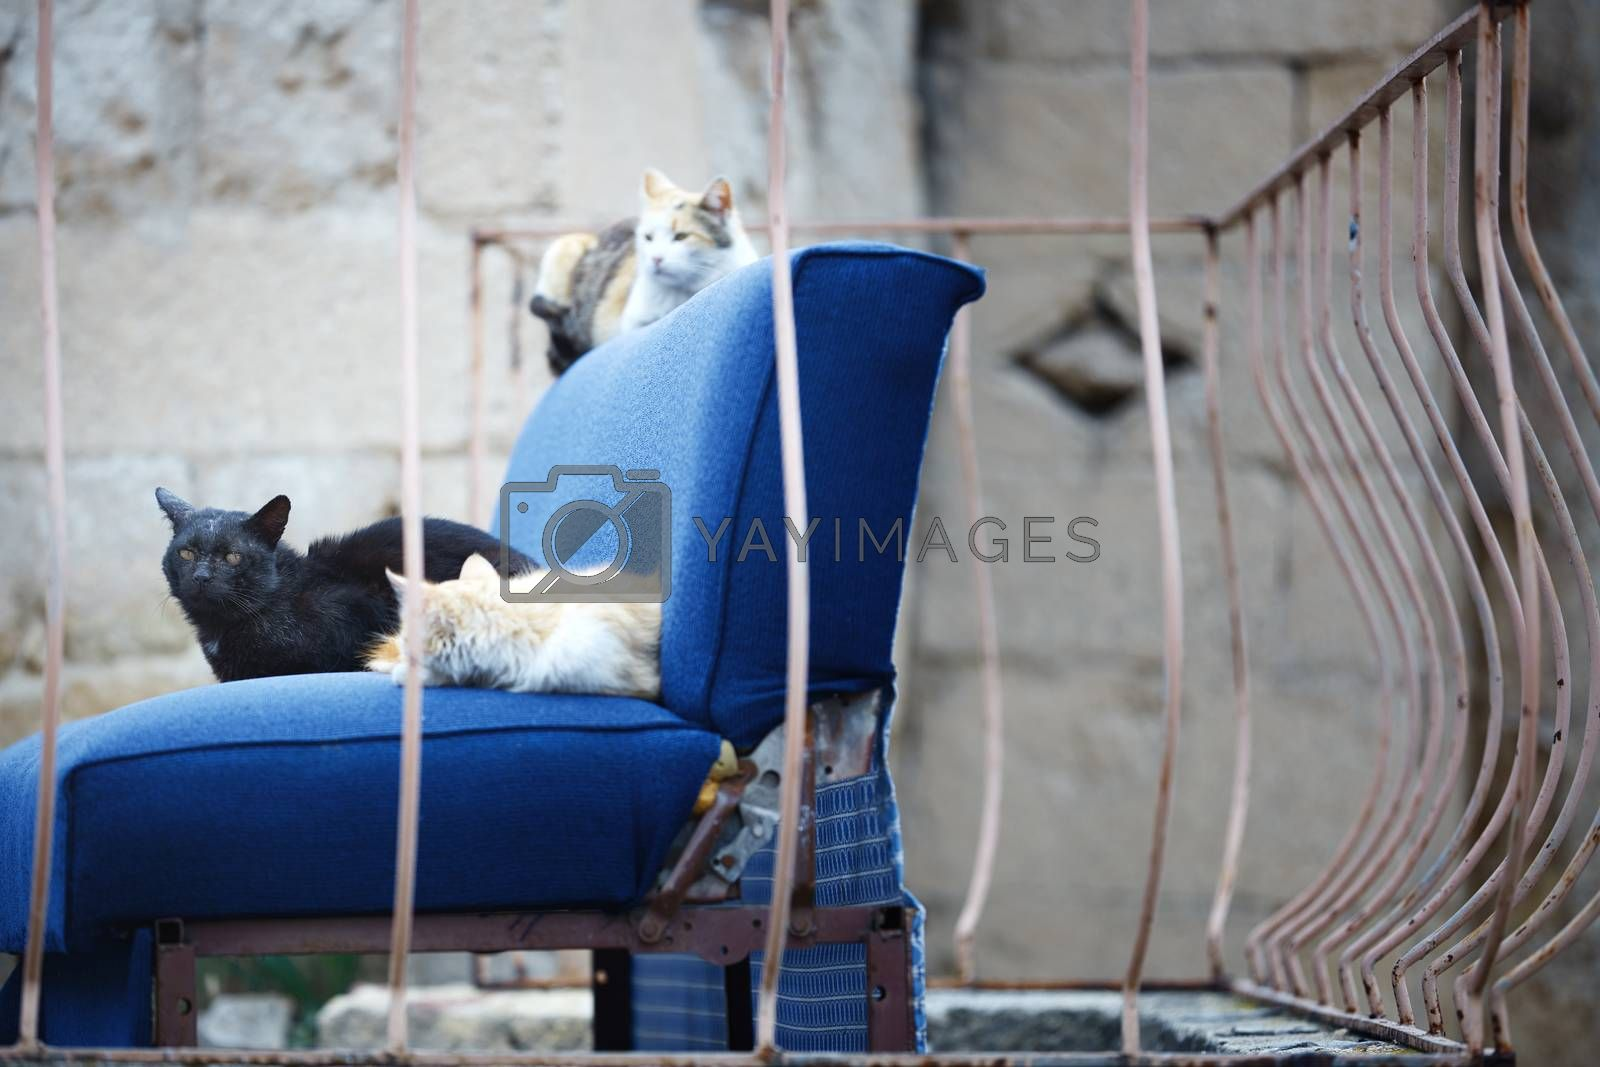 Three undomesticated cats on a blue abandoned arm-chair. Mexico